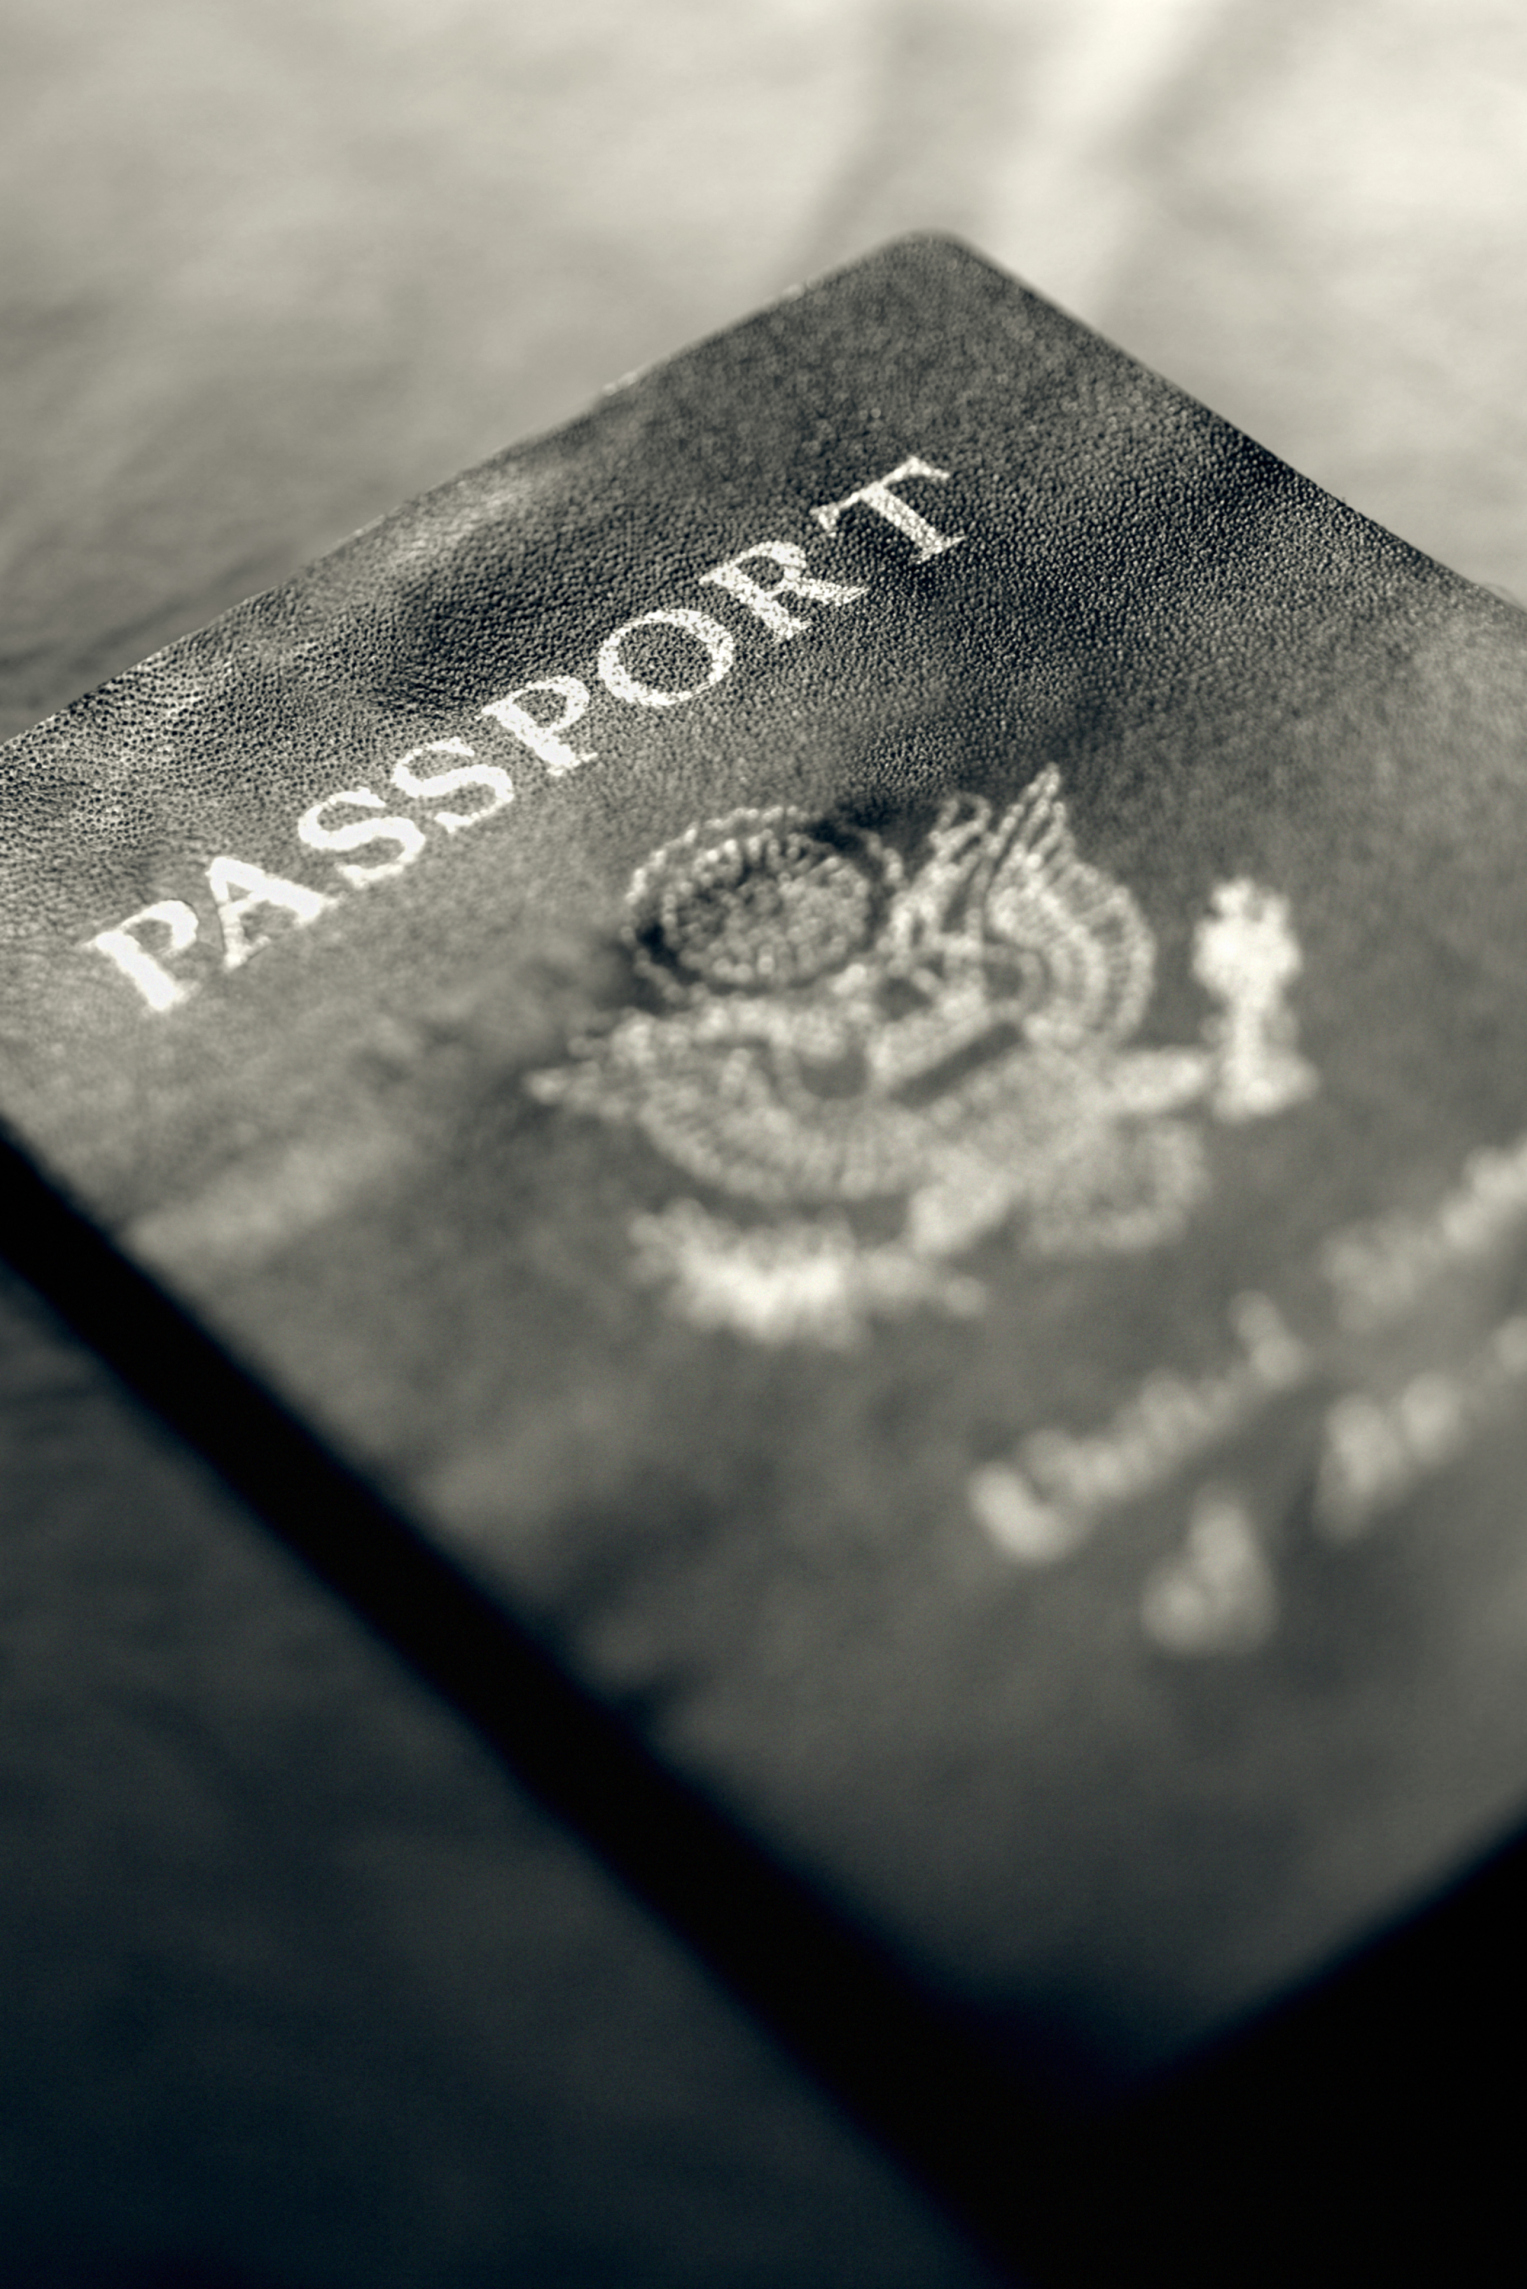 US Passport Renewal in New York State | USA Today